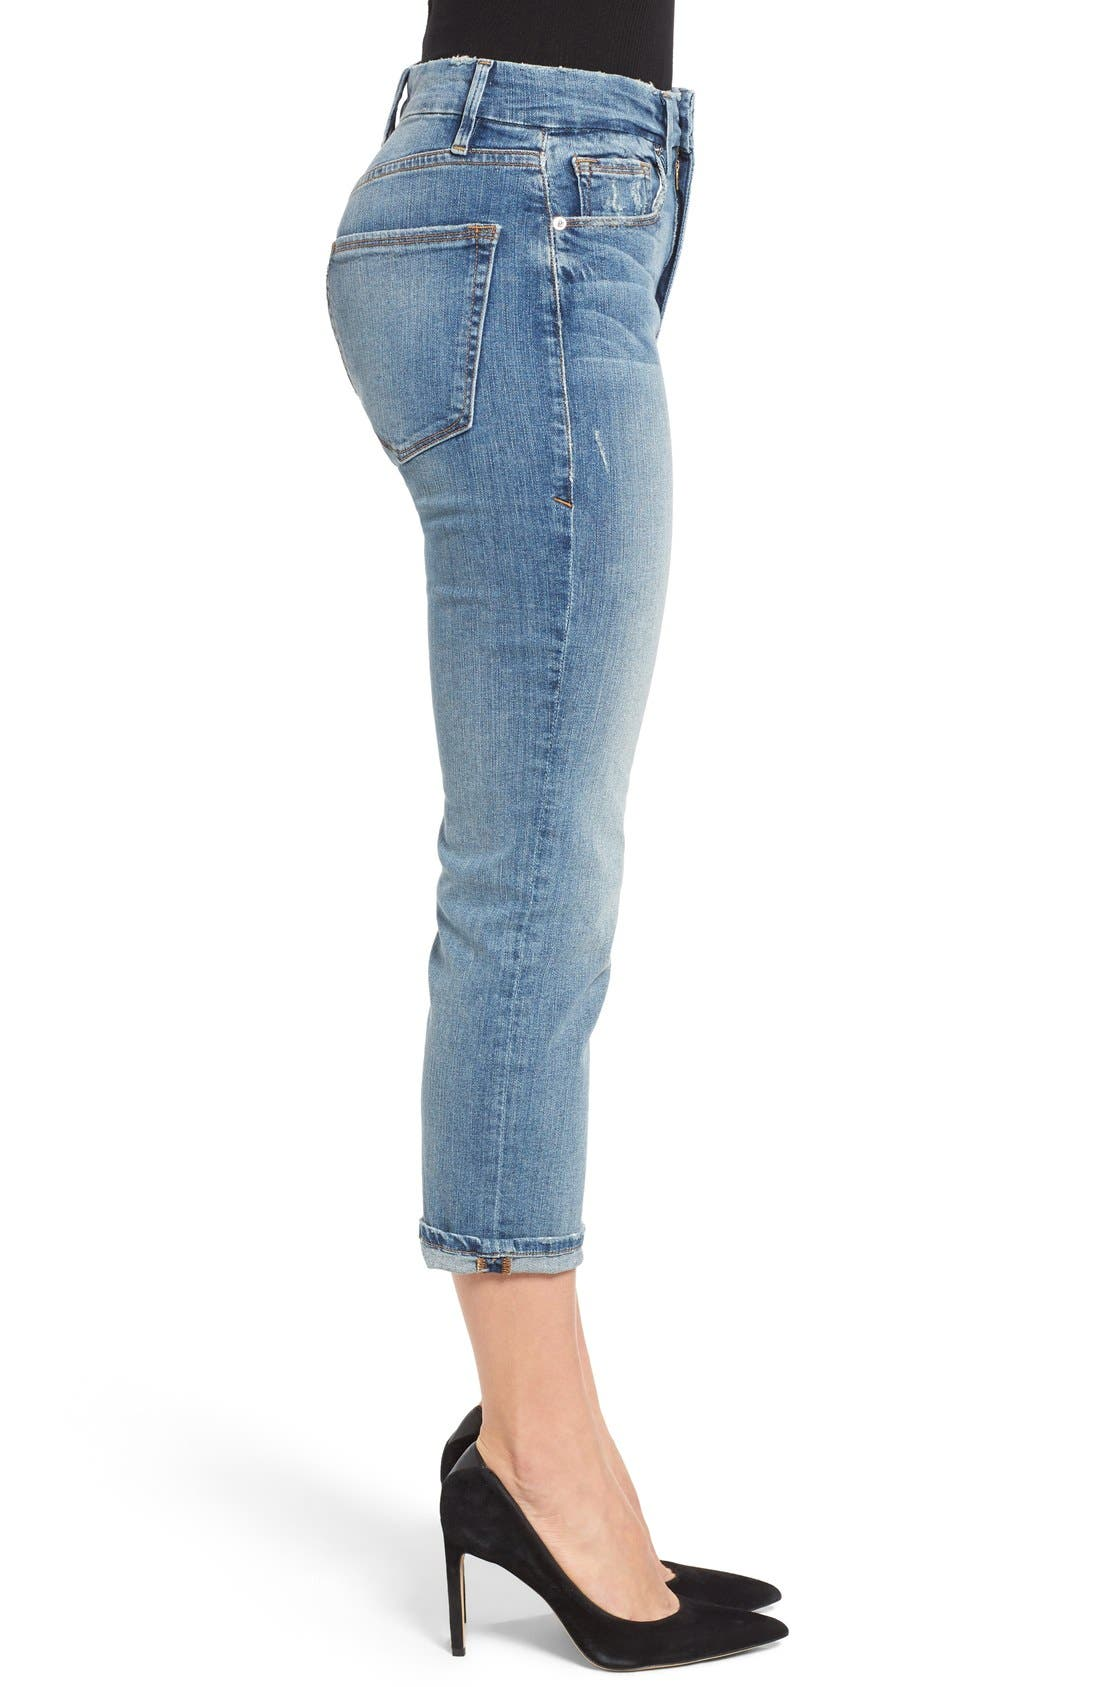 Alternate Image 3  - Good American Good Cuts High Rise Boyfriend Jeans (Blue 012) (Extended Sizes)